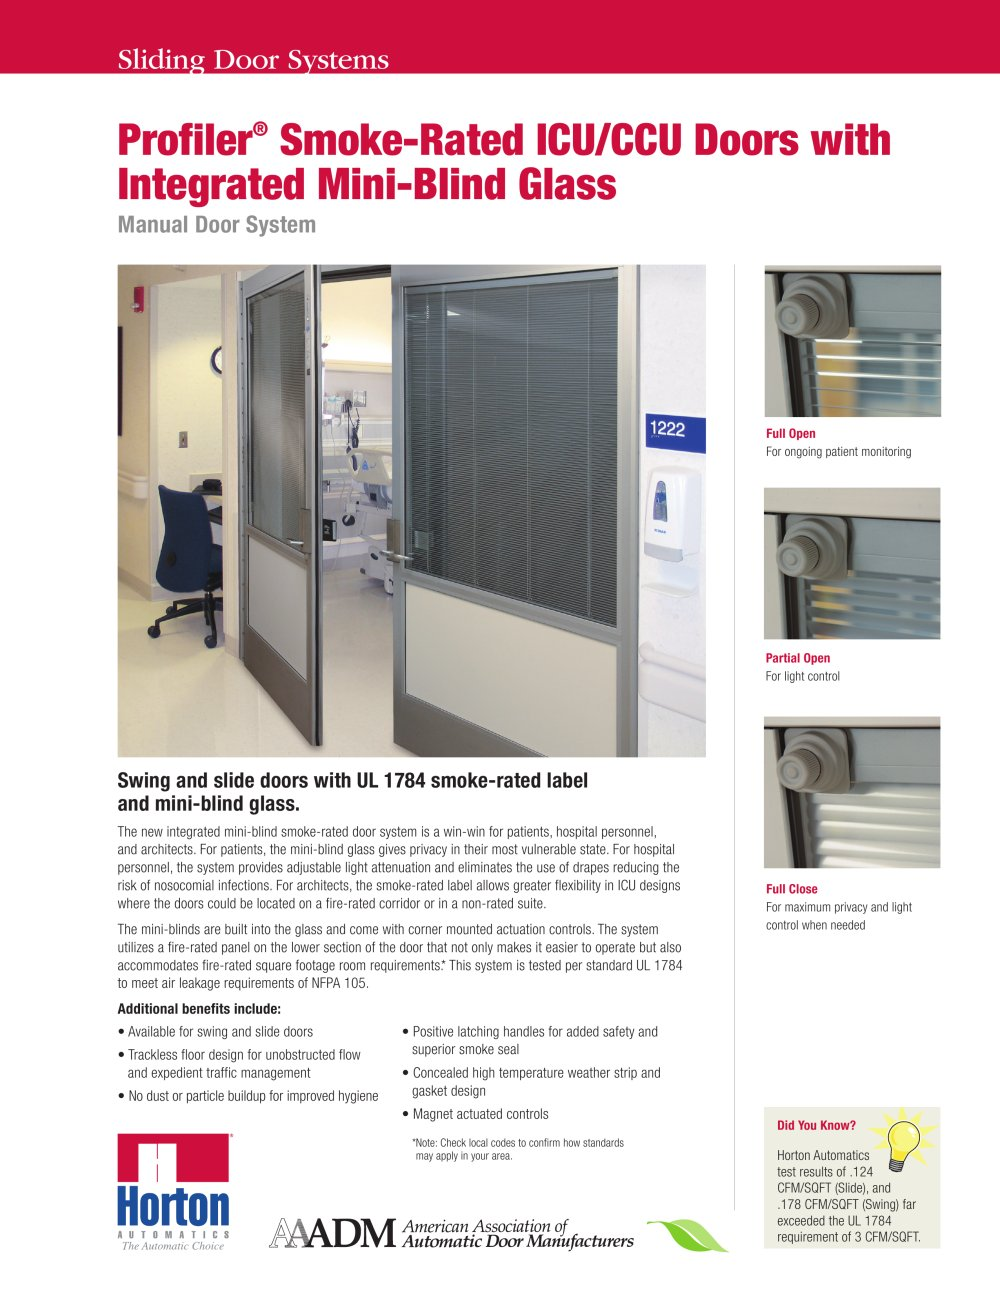 Smoke-Rated Swing and Slide ICU Door Systems with Mini-Blind Glass - 1 / 2 Pages  sc 1 st  Catalogues Medicalexpo & Smoke-Rated Swing and Slide ICU Door Systems with Mini-Blind Glass ...